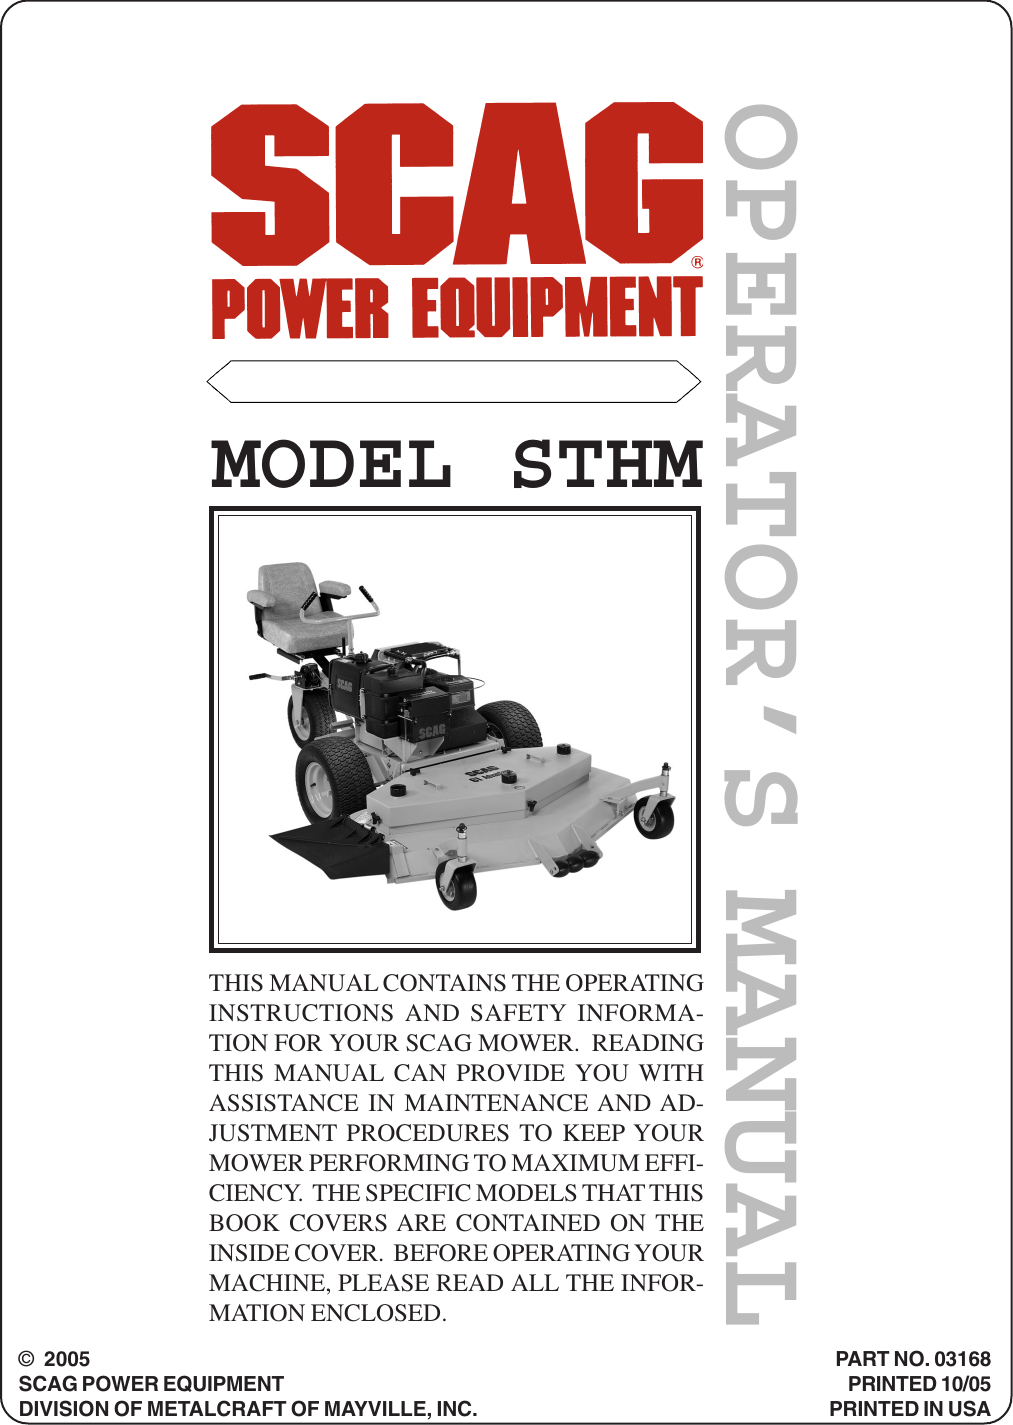 Scag Power Equipment Lawn Mower Sthm Users Manual 2006